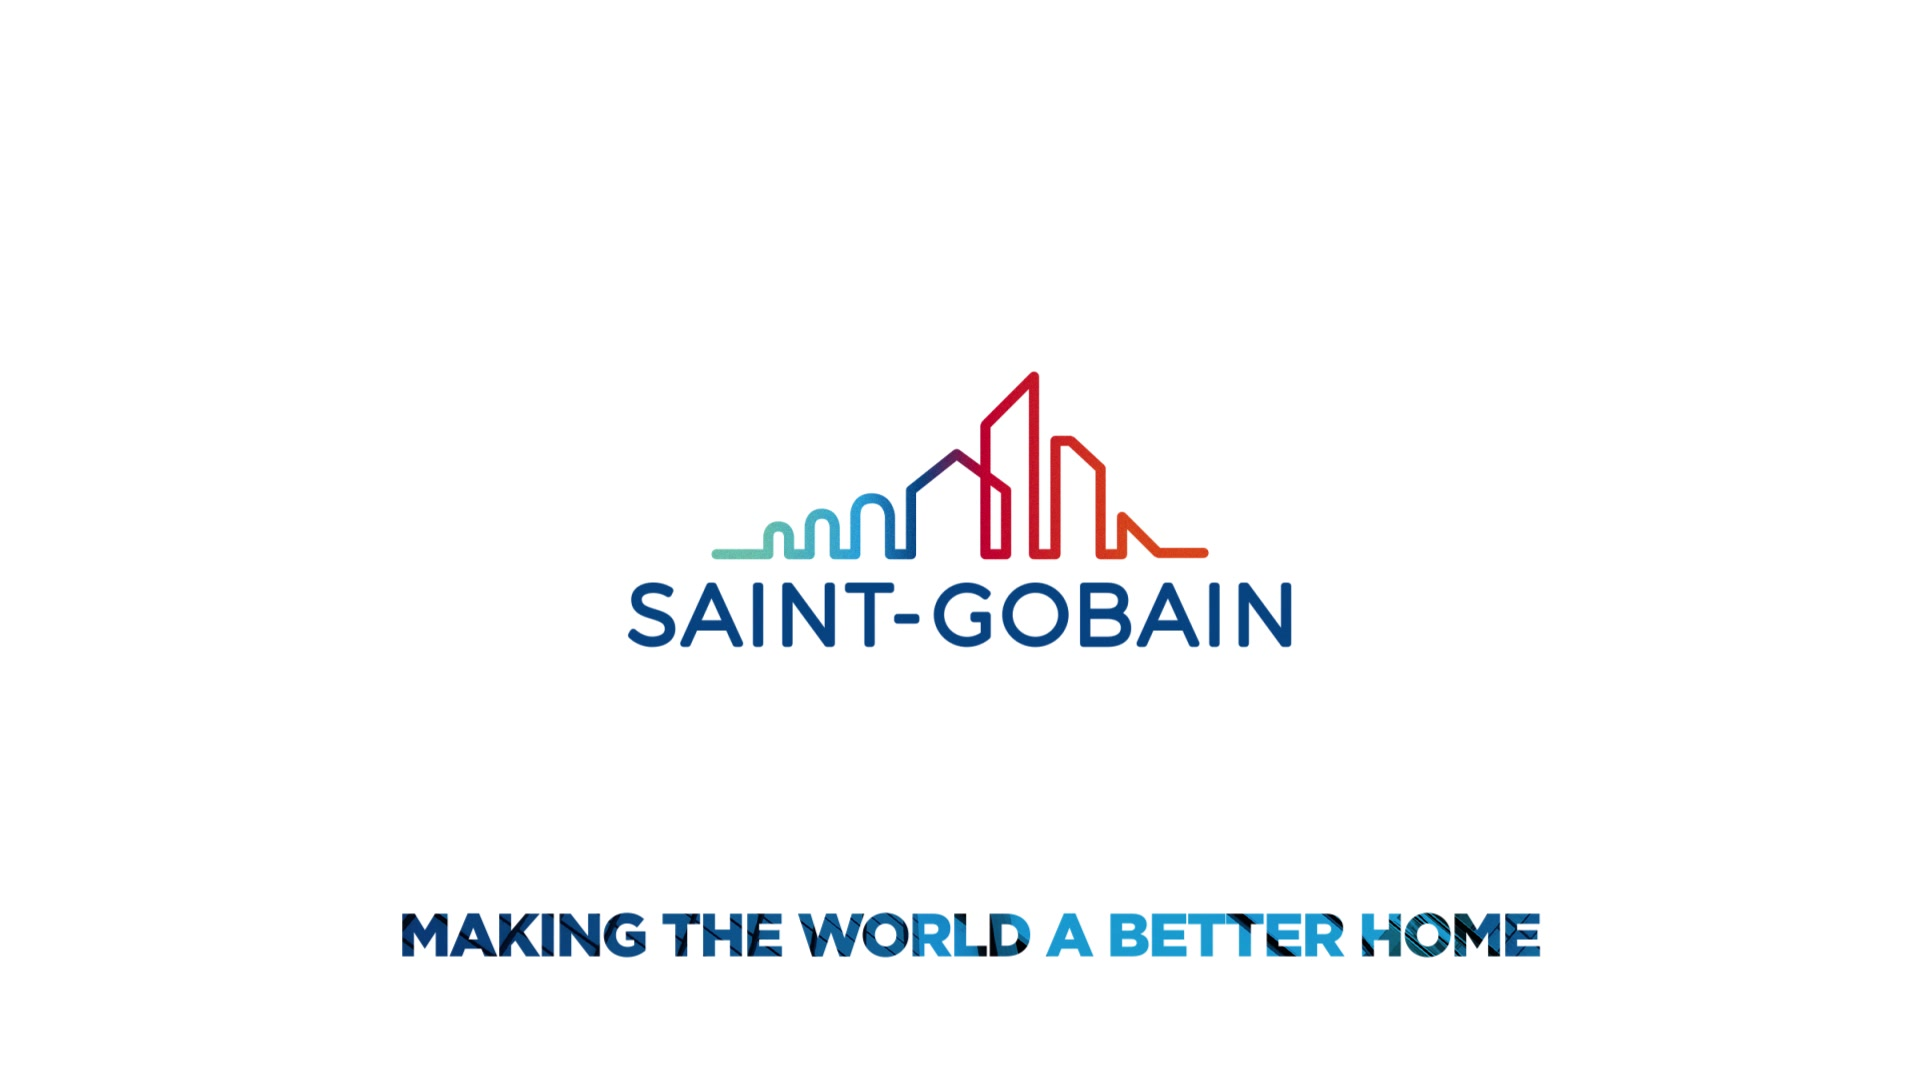 SAINT-GOBAIN our best